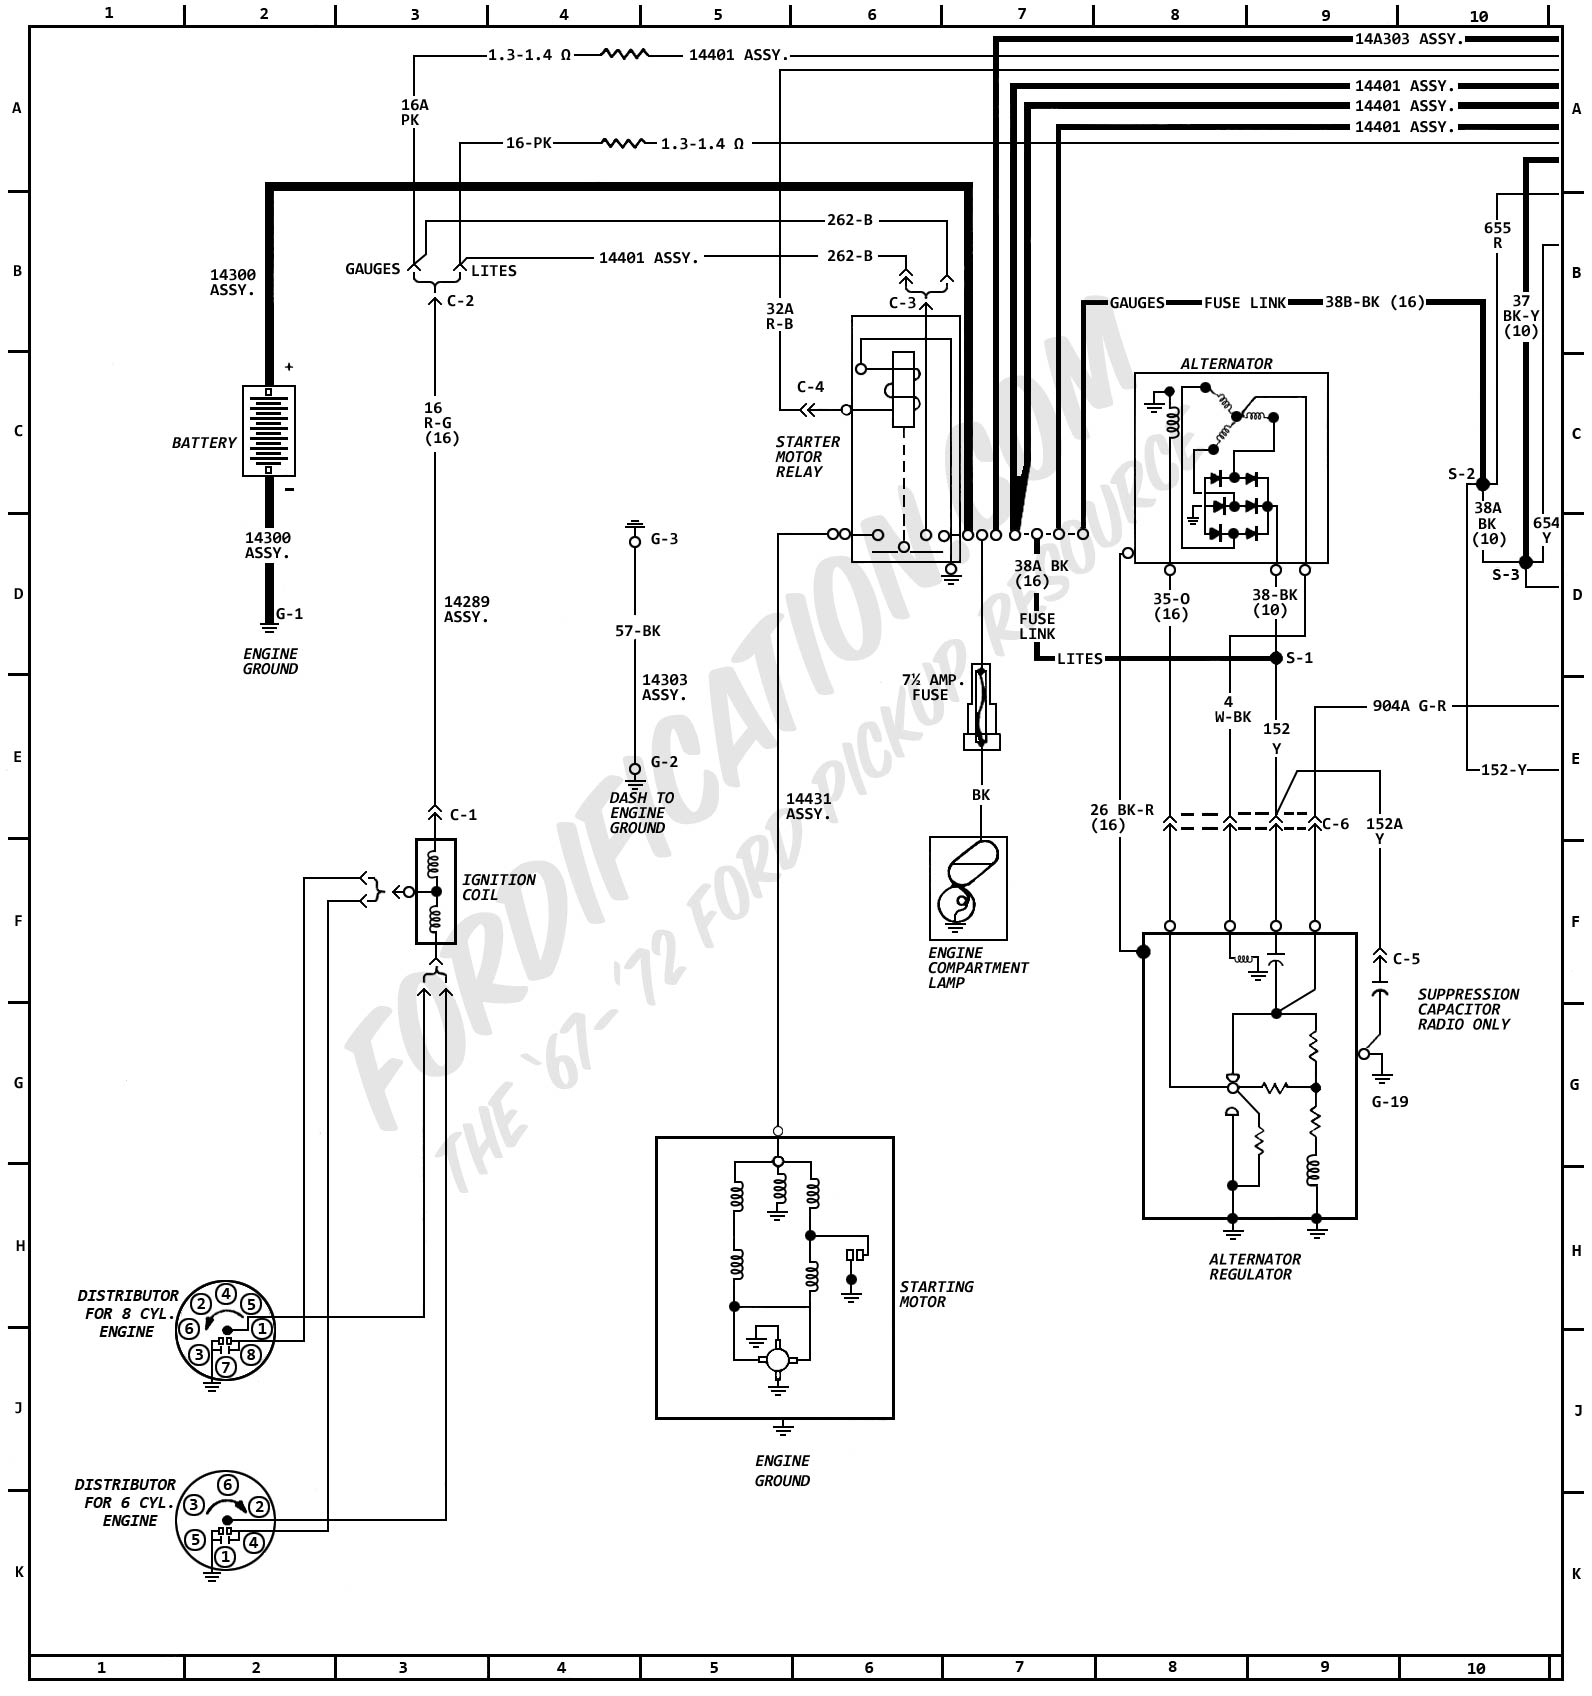 Auto Wiring Diagram Library Packard